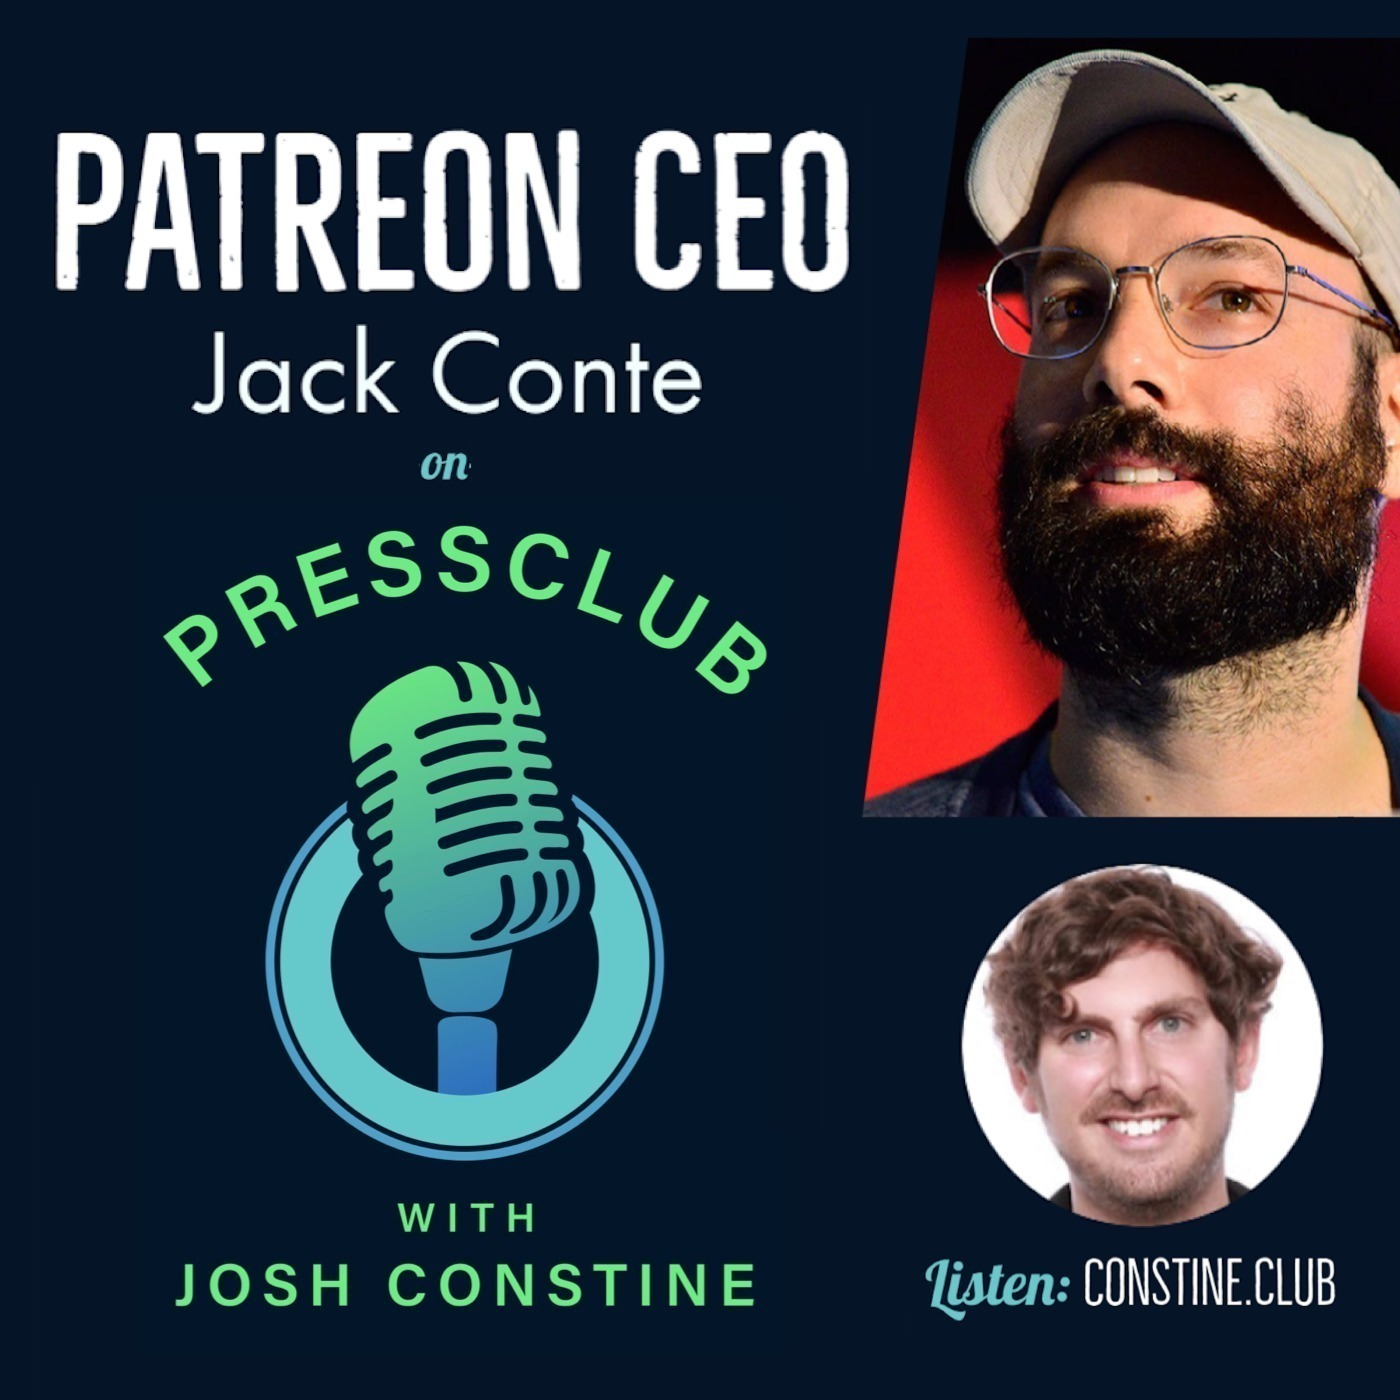 Patreon CEO Jack Conte on the creator economy, artist burnout, and competition from Facebook & Google